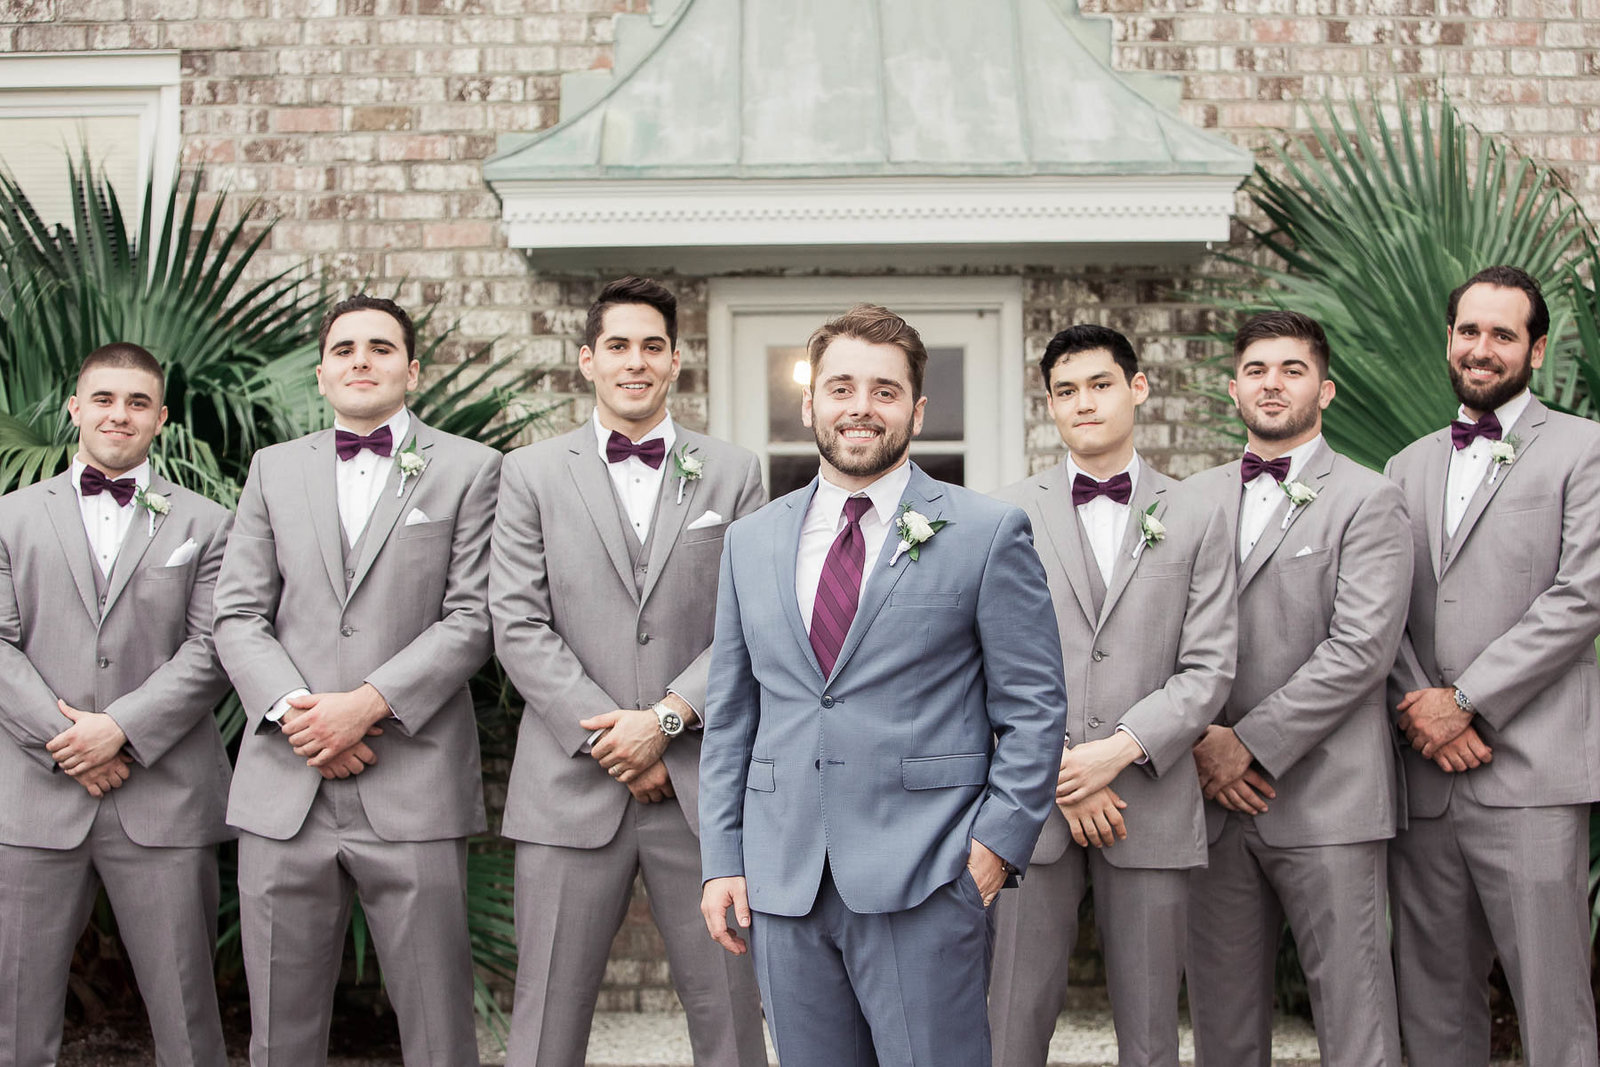 Groom poses with groomsmen, The Island House, Charleston, South Carolina